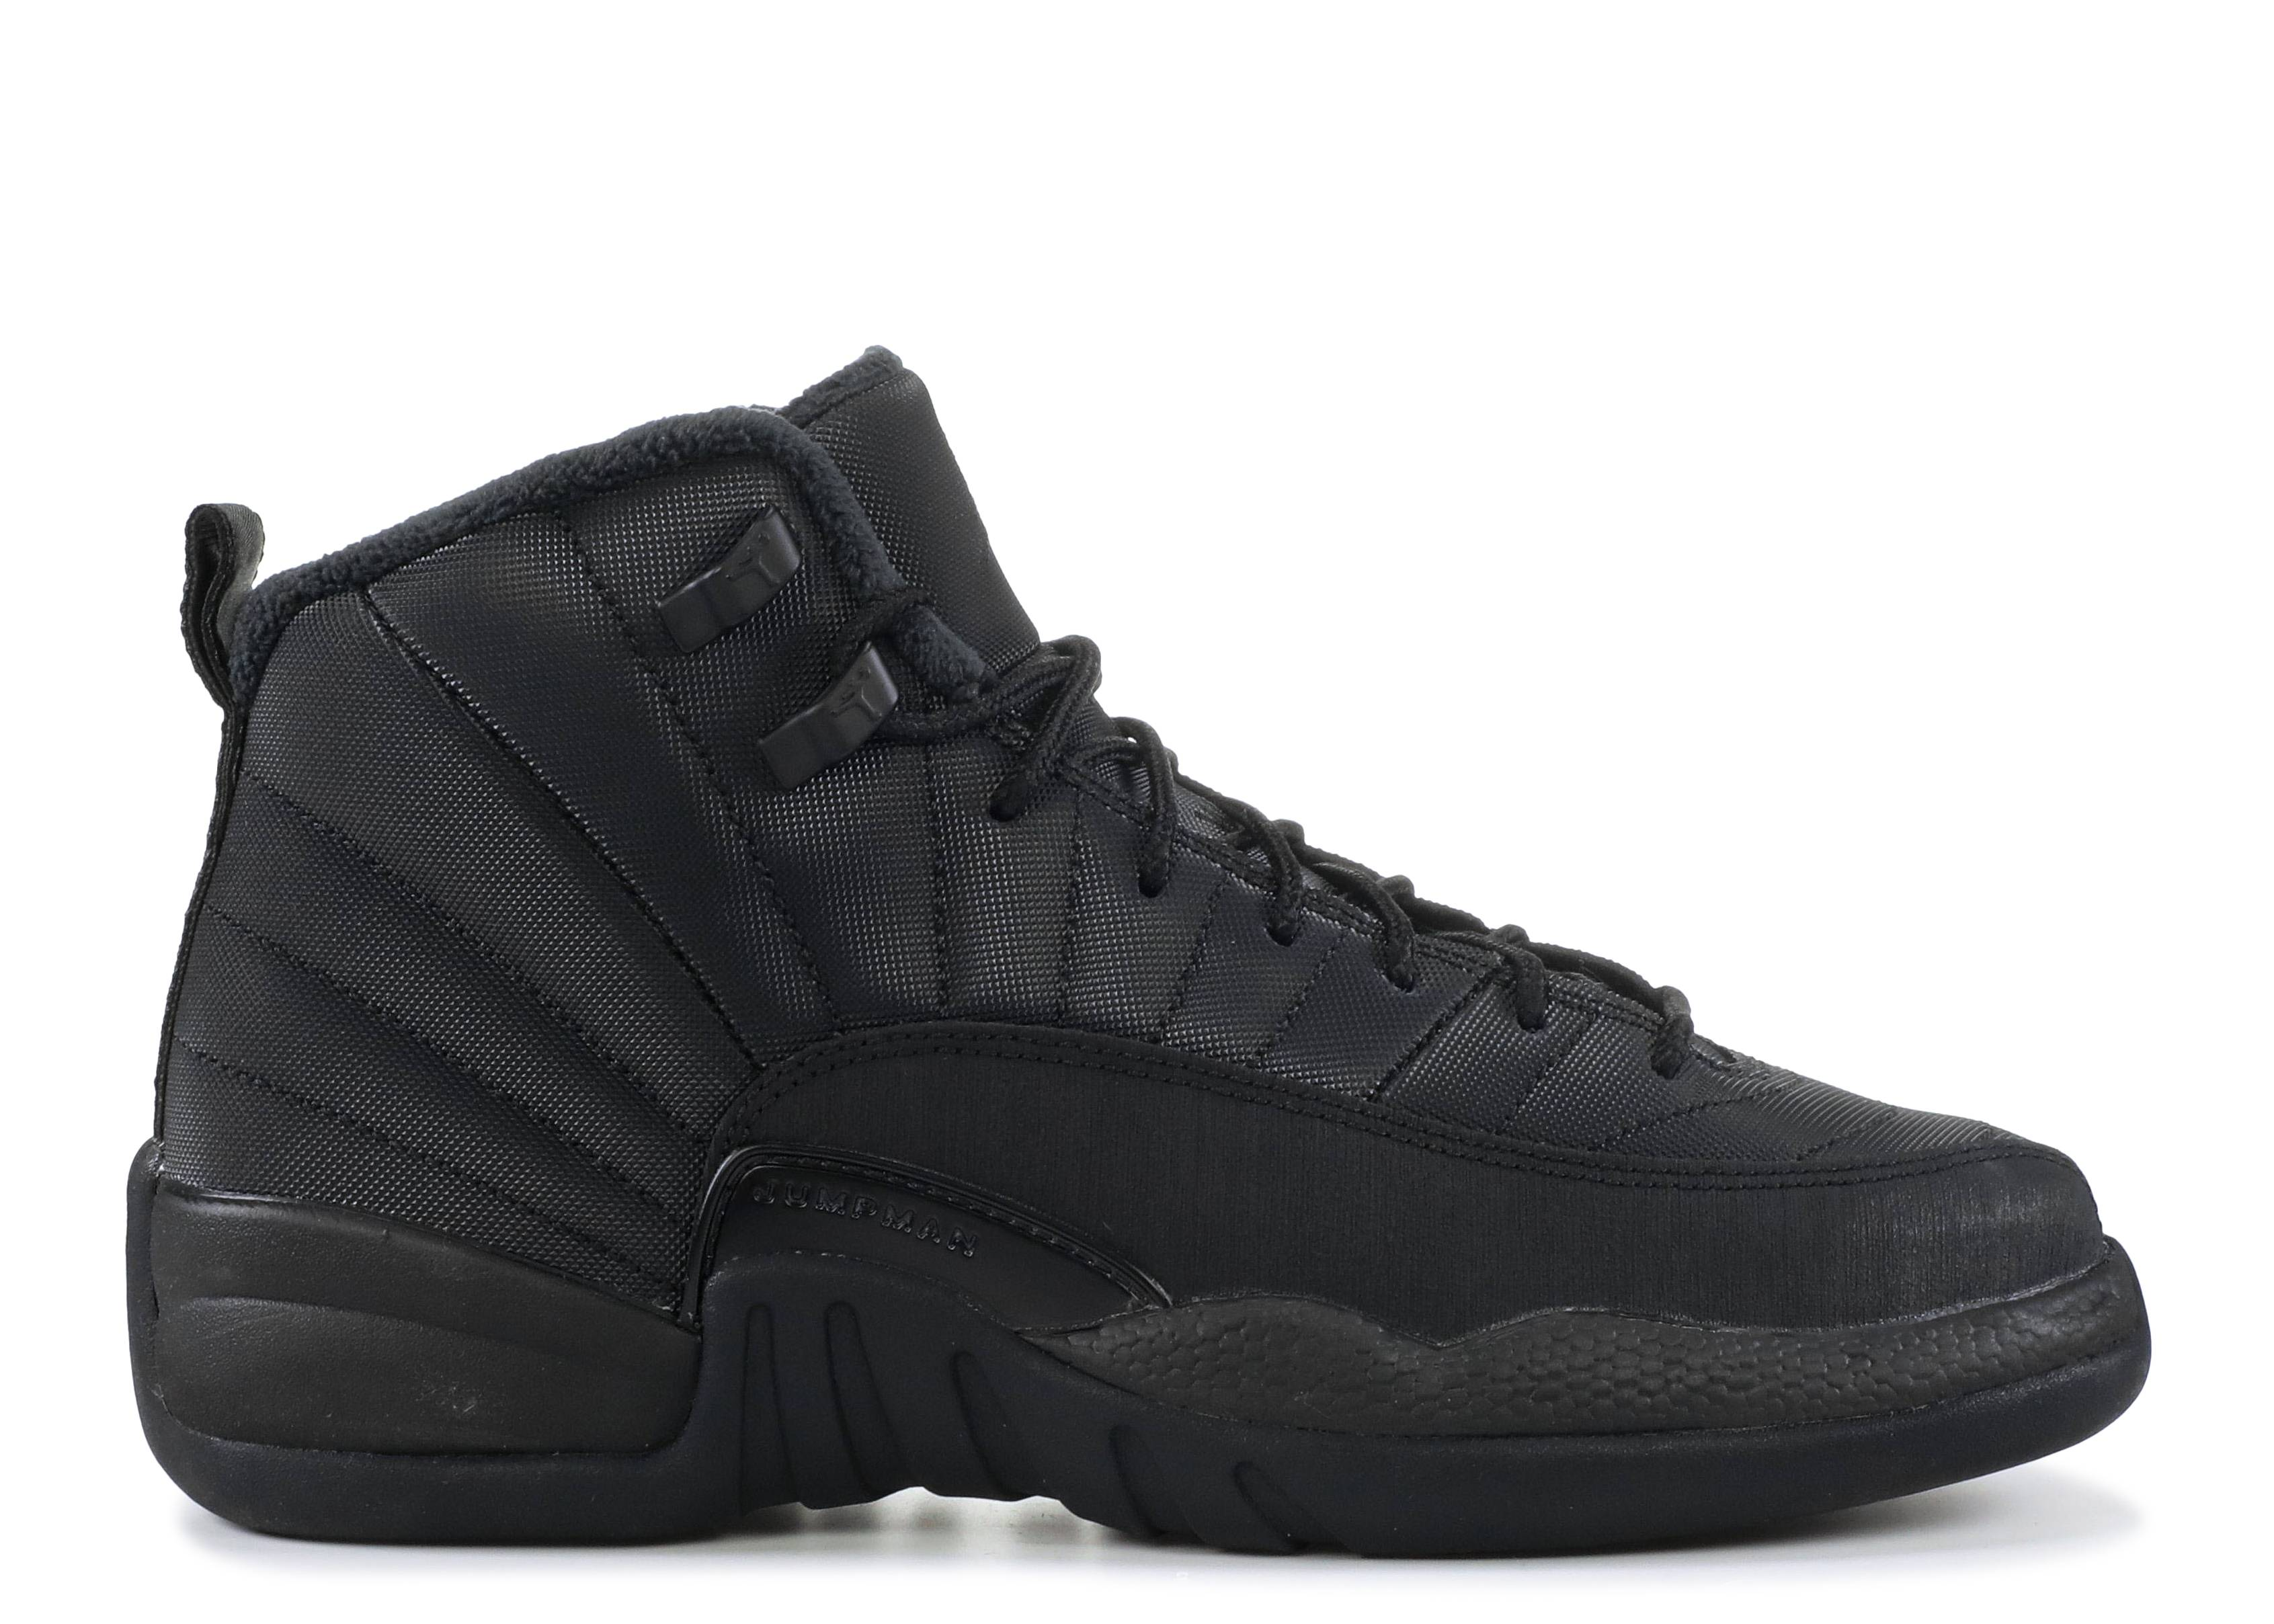 meet fb01a d1ff4 air jordan 12 retro wntr (gs)